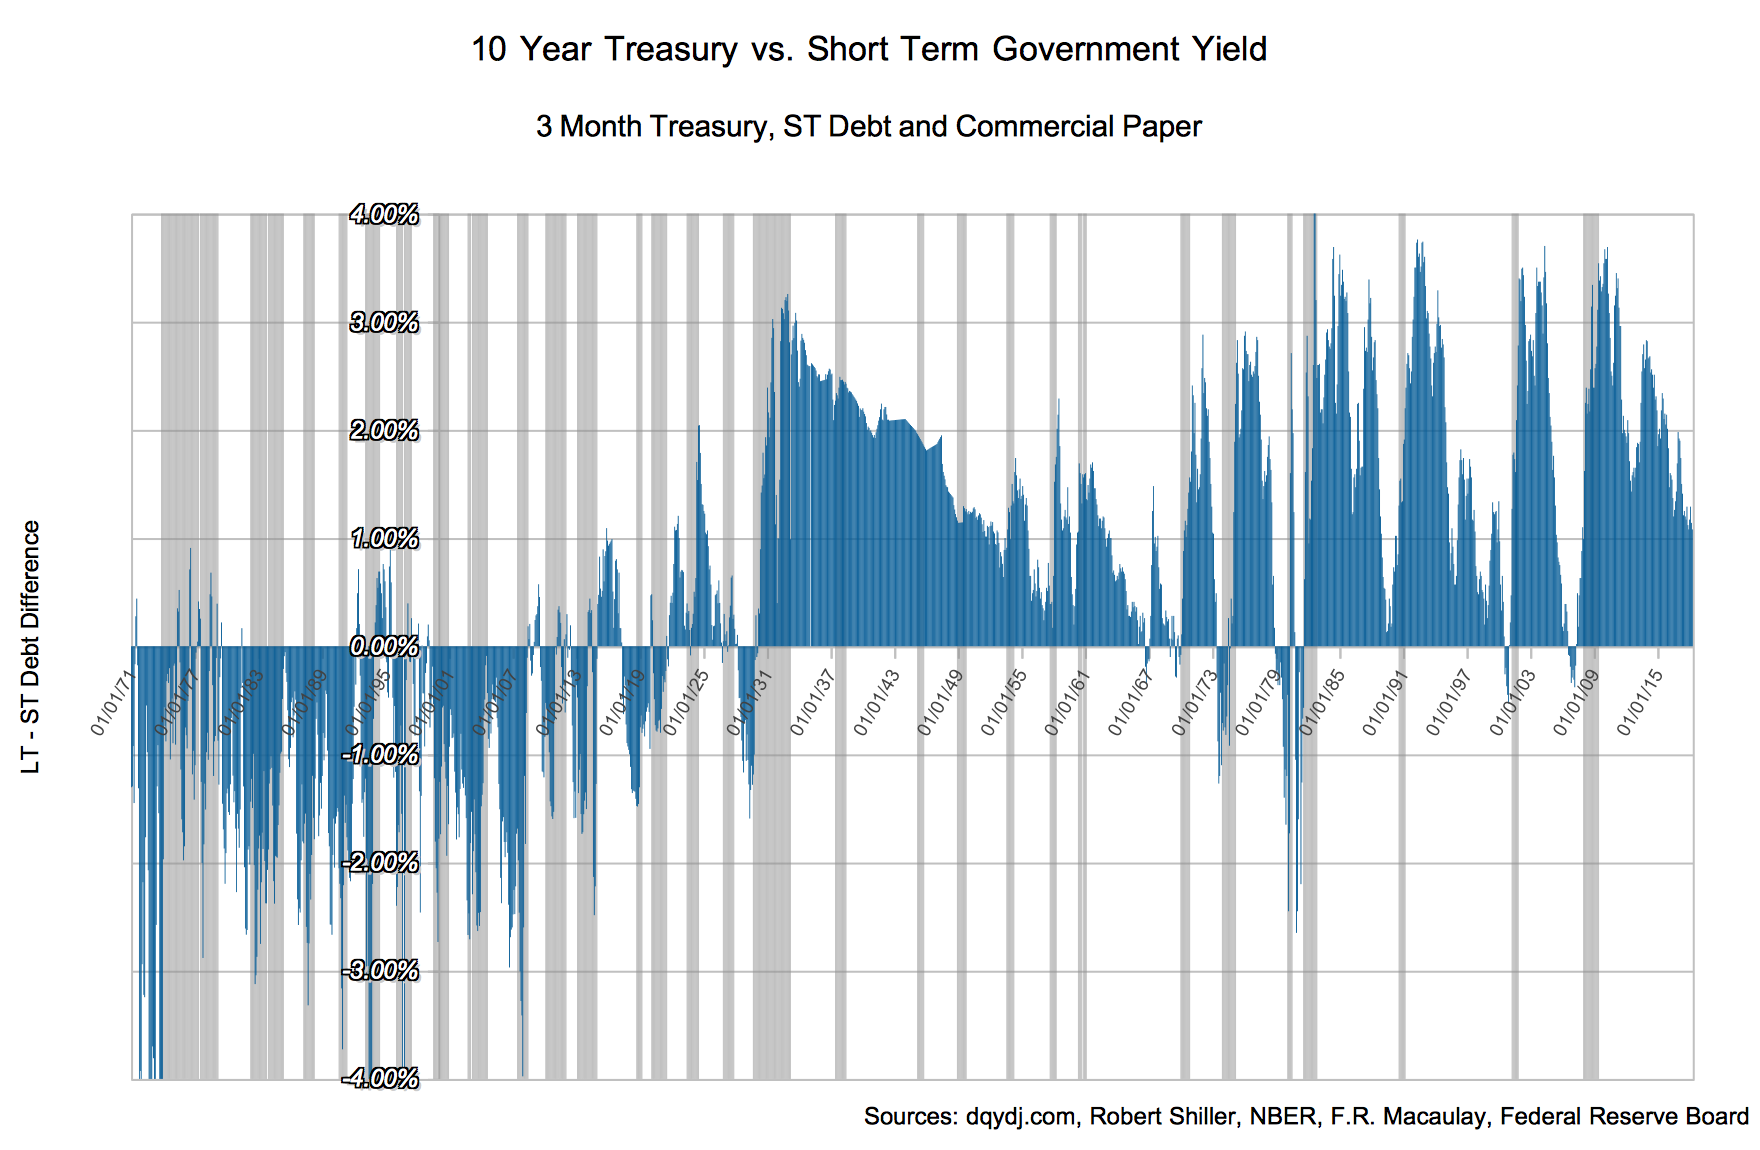 10 Year Treasury Yield v. Short Term Debt, 1871 - Today